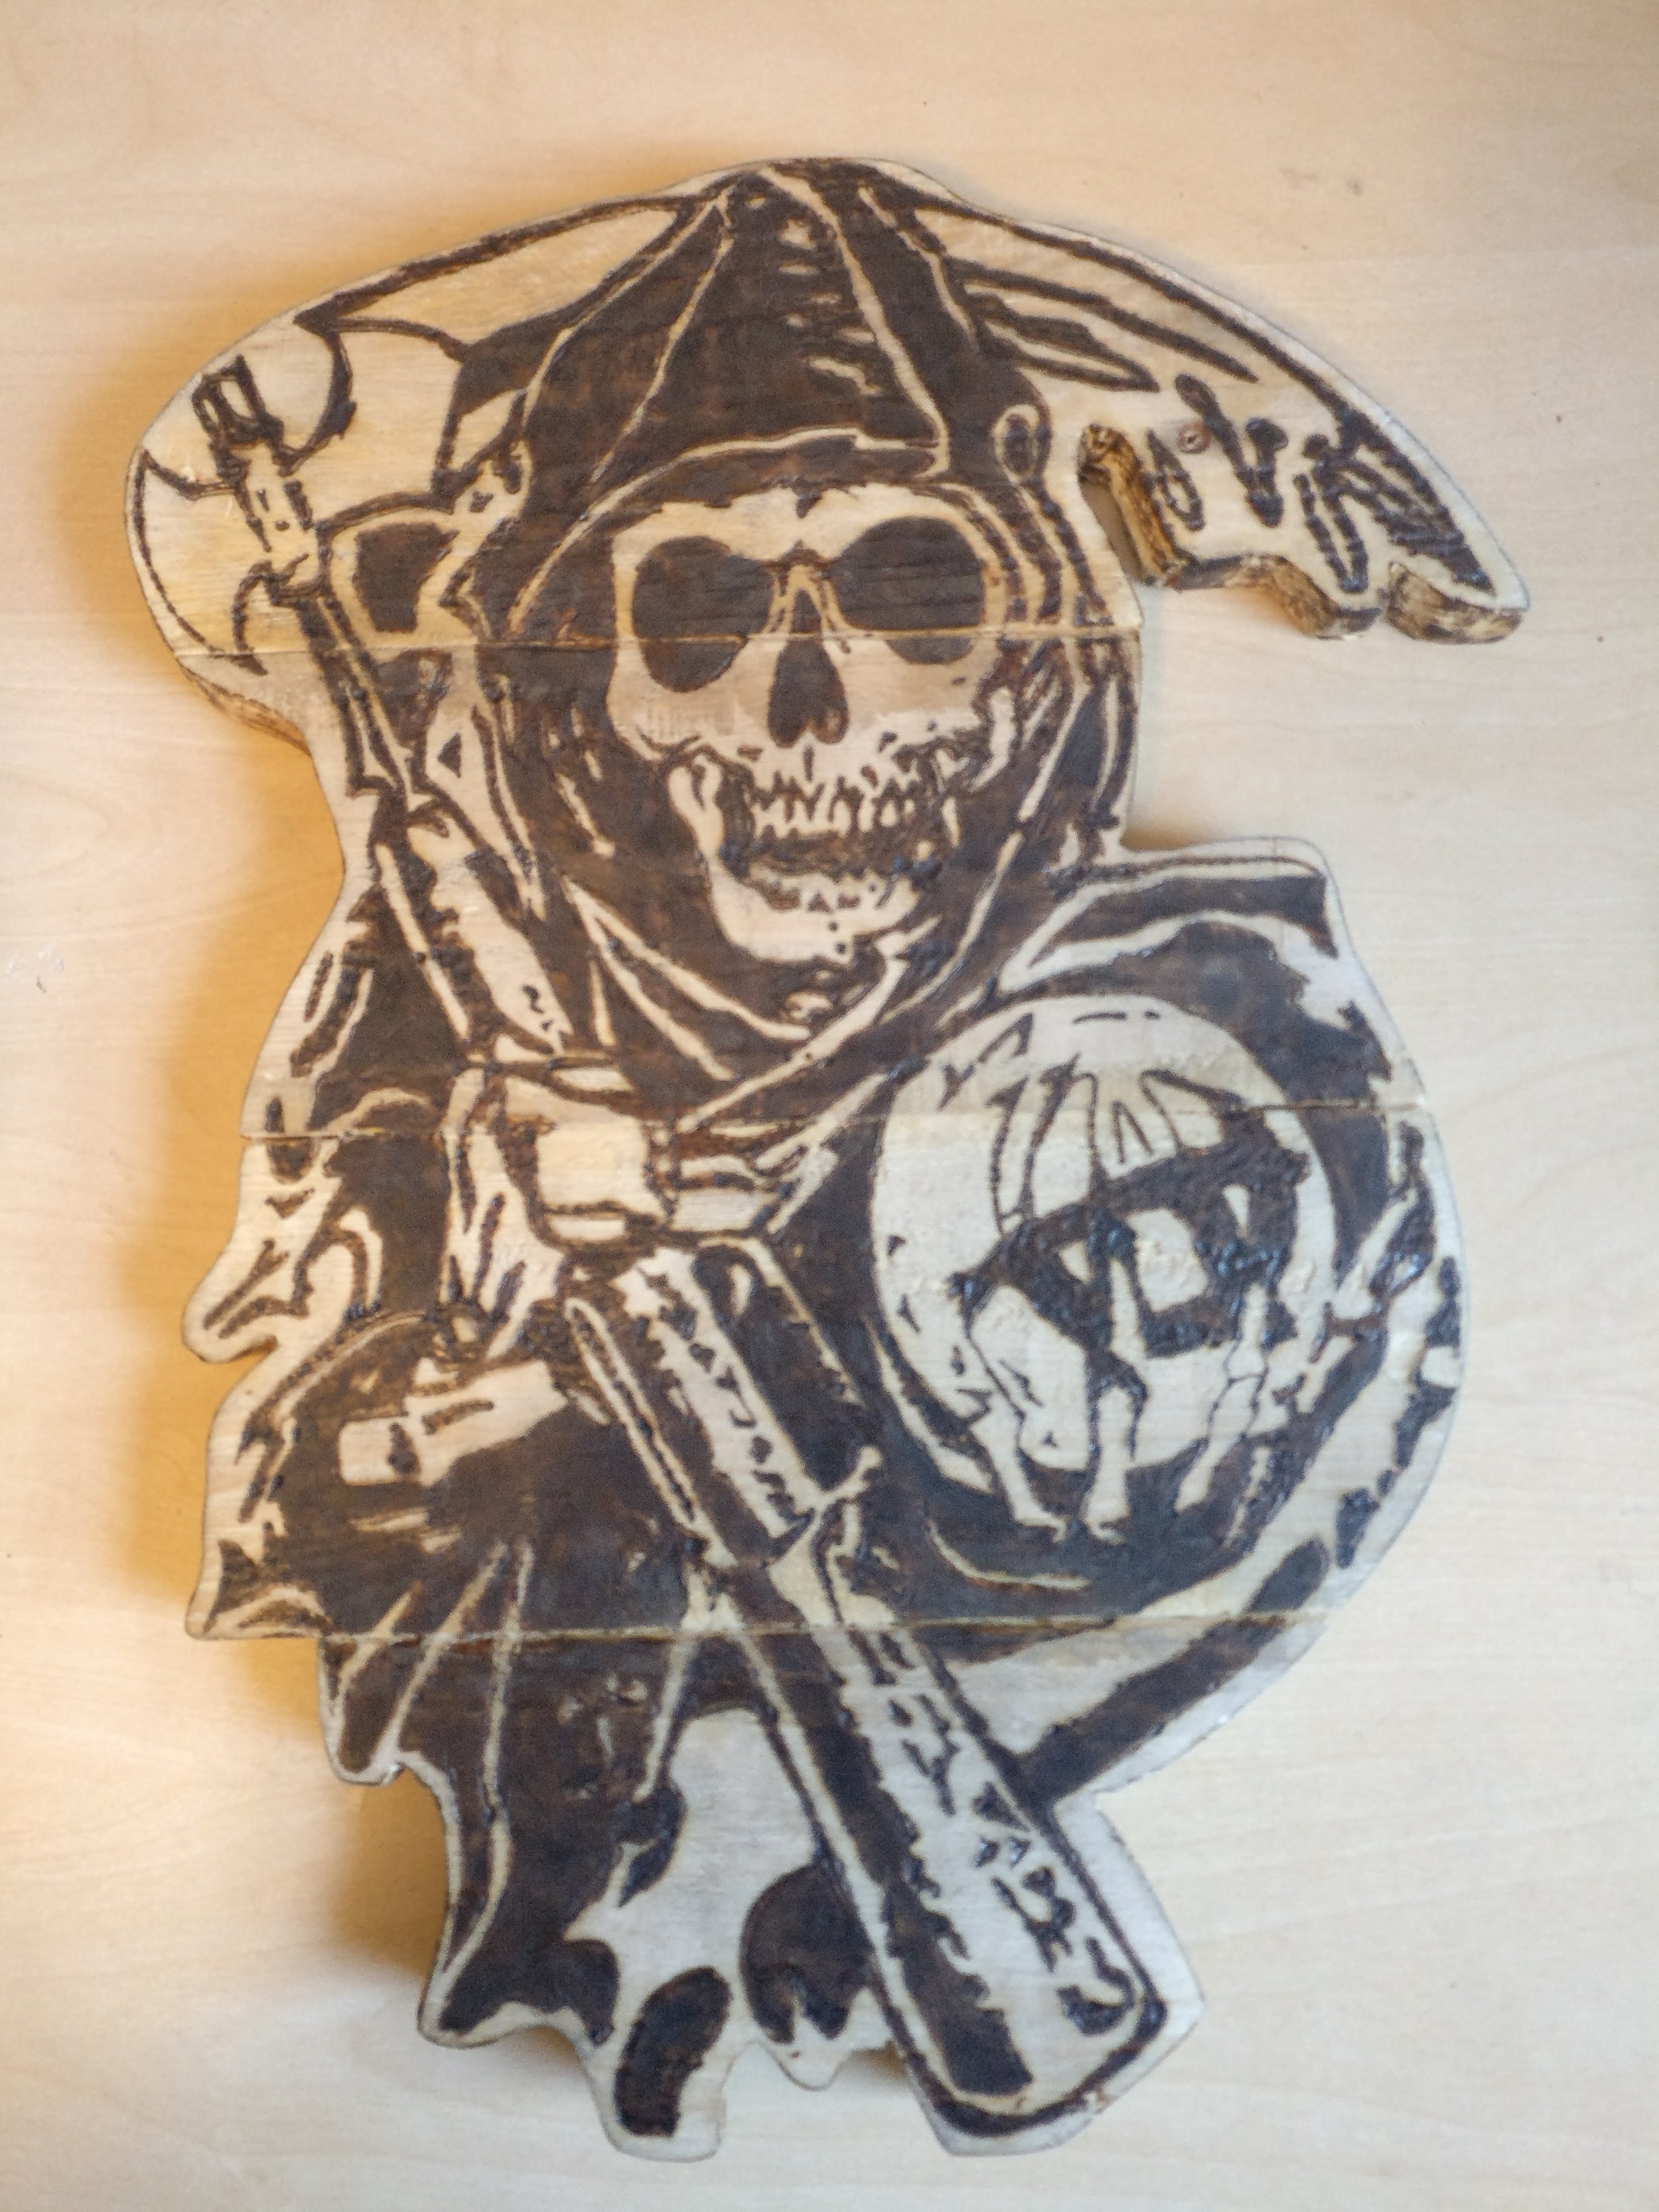 Sons of Anarchy Grim Reeper - Pyrography technique